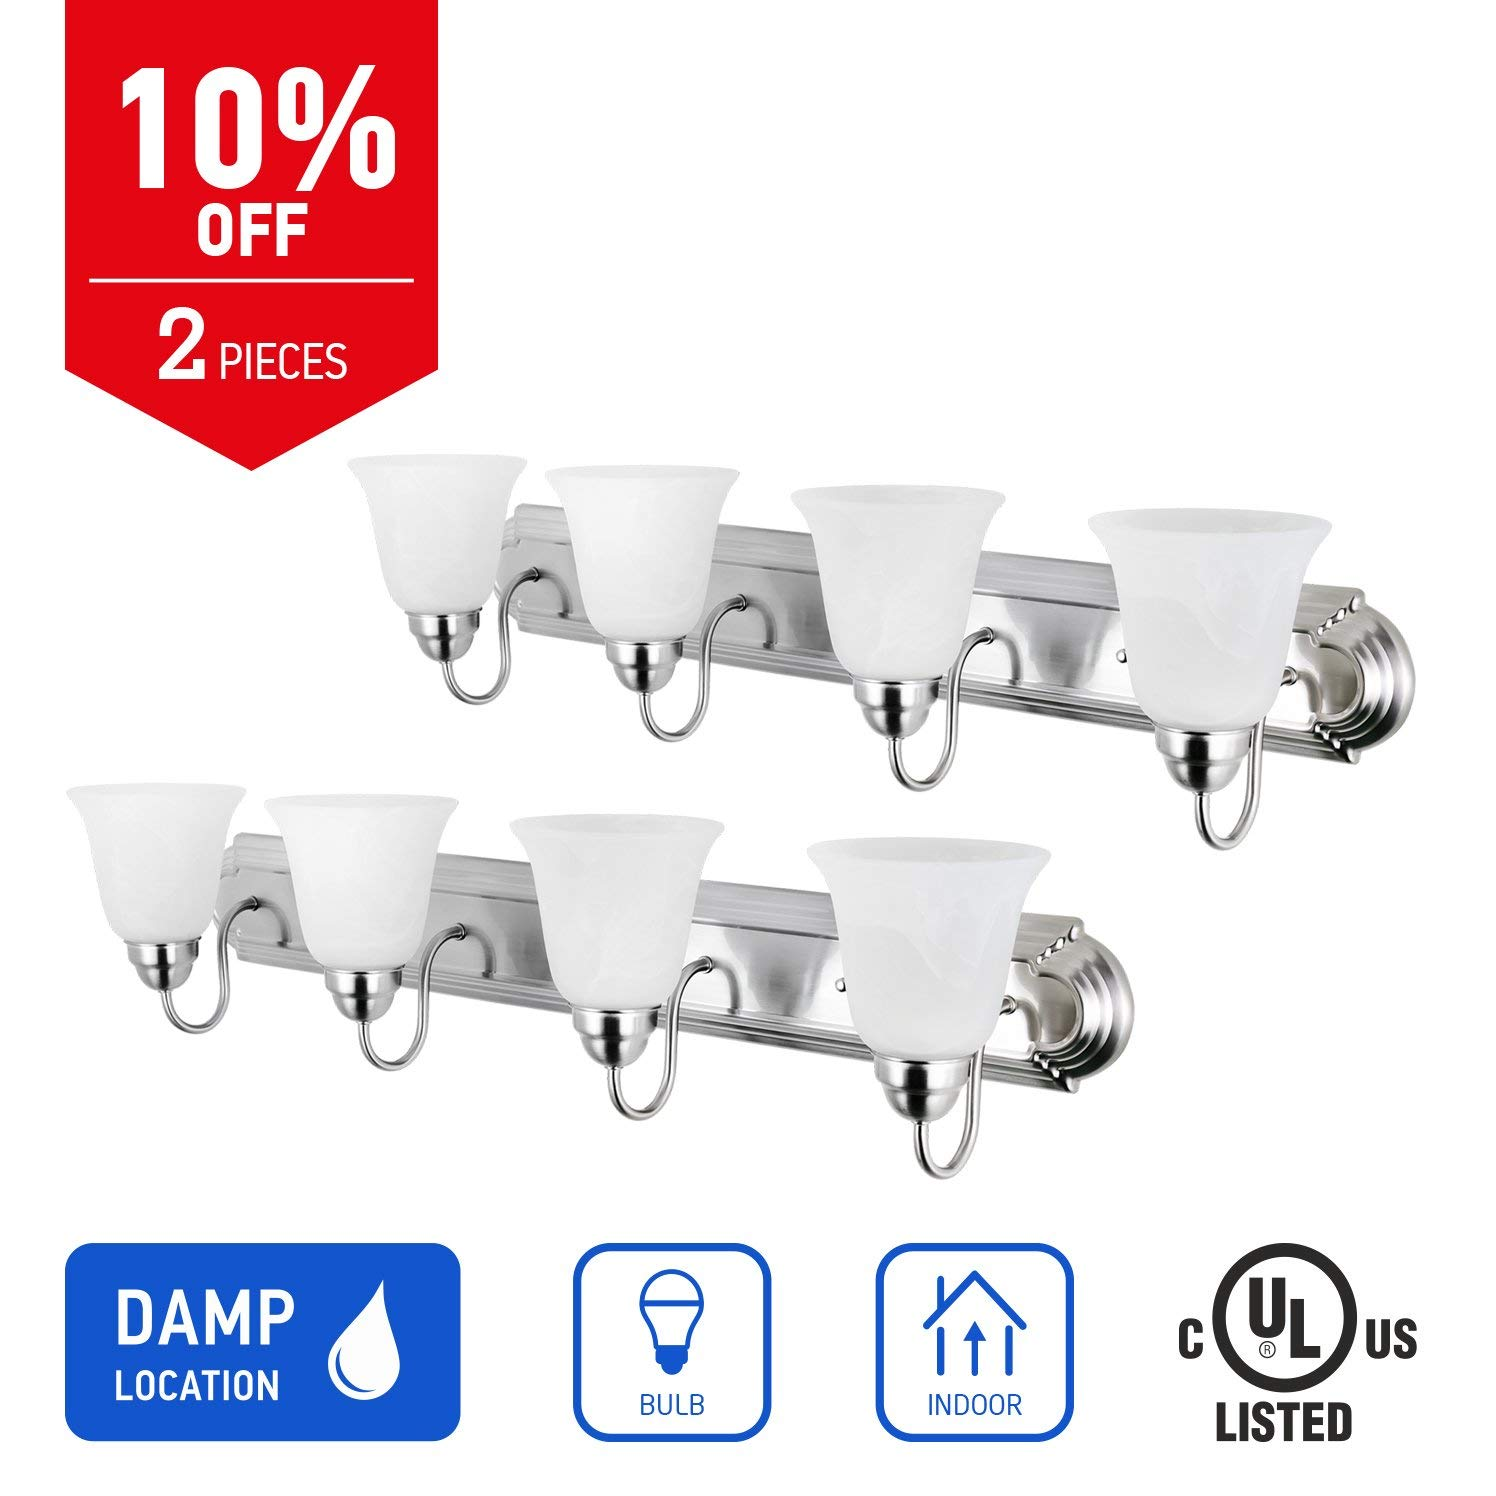 IN HOME 4-Light Bath Bar Light Up or Down, Interior Bathroom Vanity Wall Lighting Fixture VF43, 4x60 Watt E26 Socket, Brushed Nickel Finish with Alabaster Bell Glass Shade (2 Pack) UL Listed